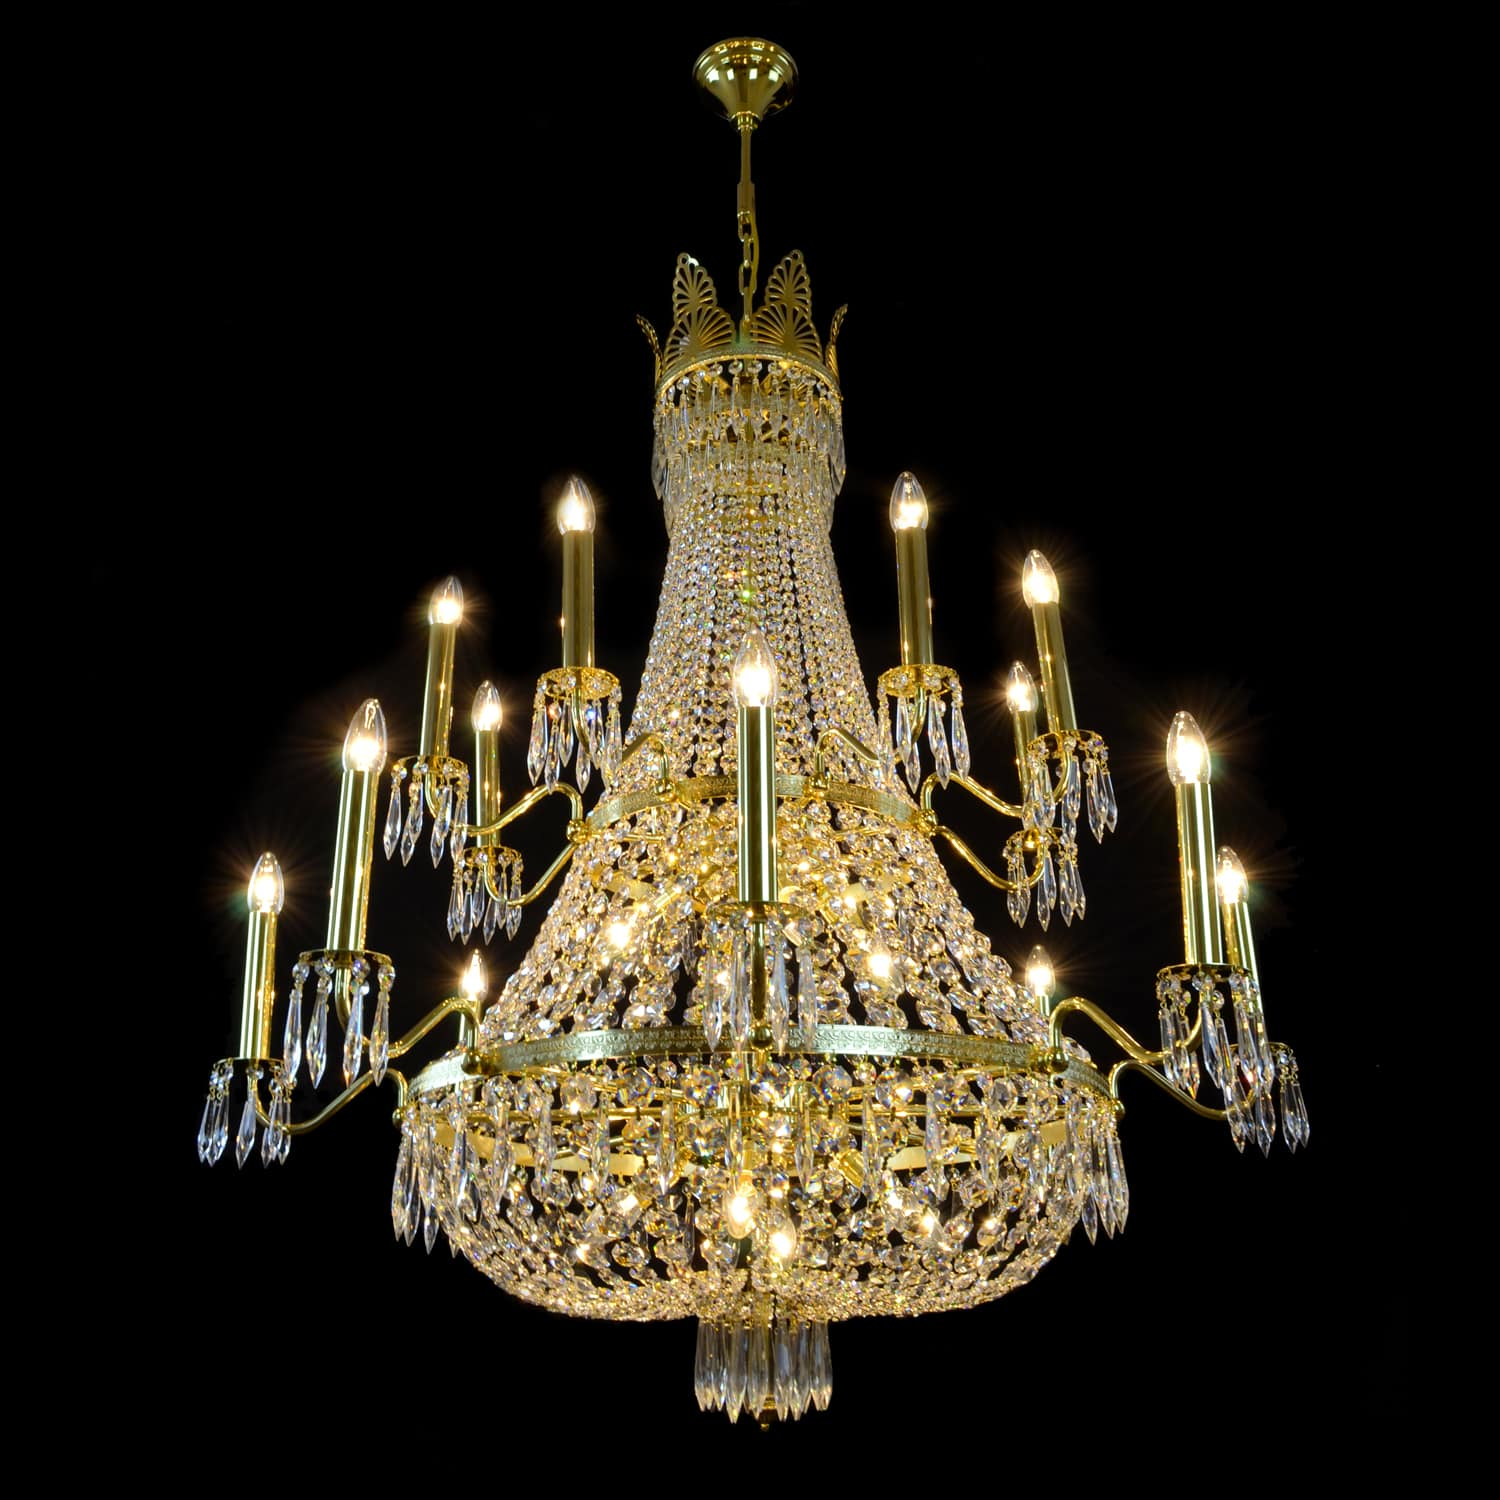 empire-crystal-chandeliers-wranovsky.jpg